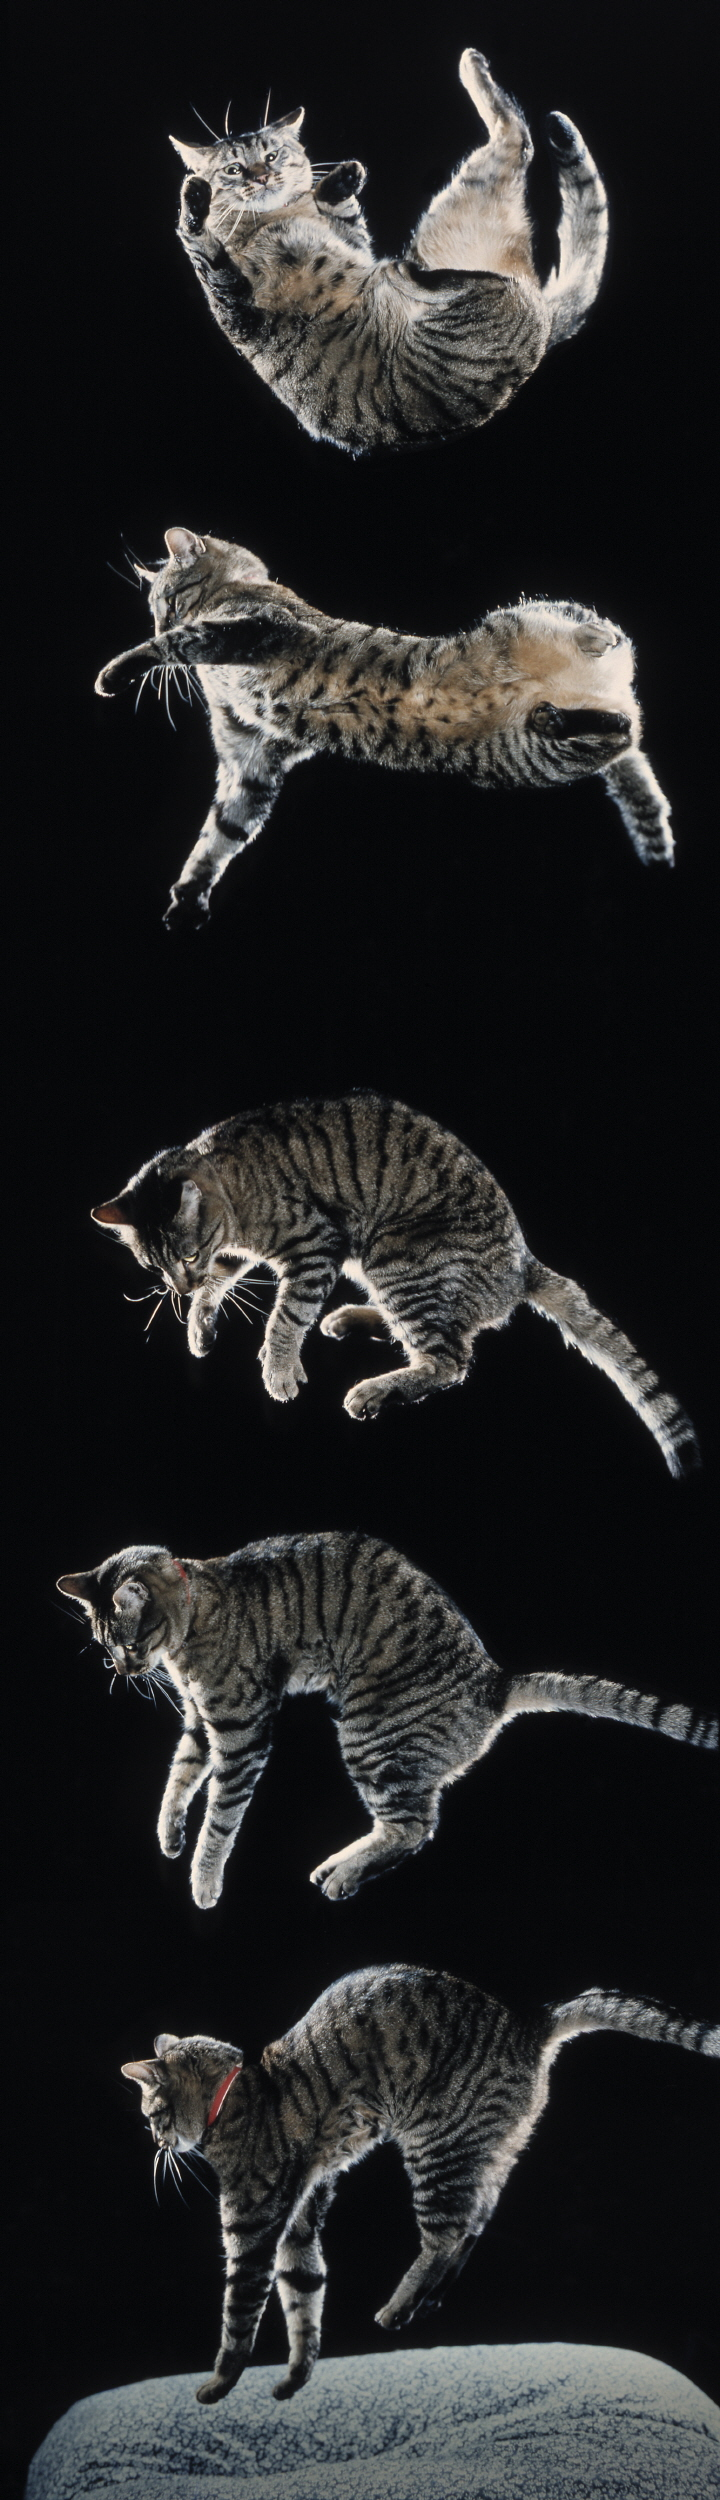 How cats land on their feet | OUPblog